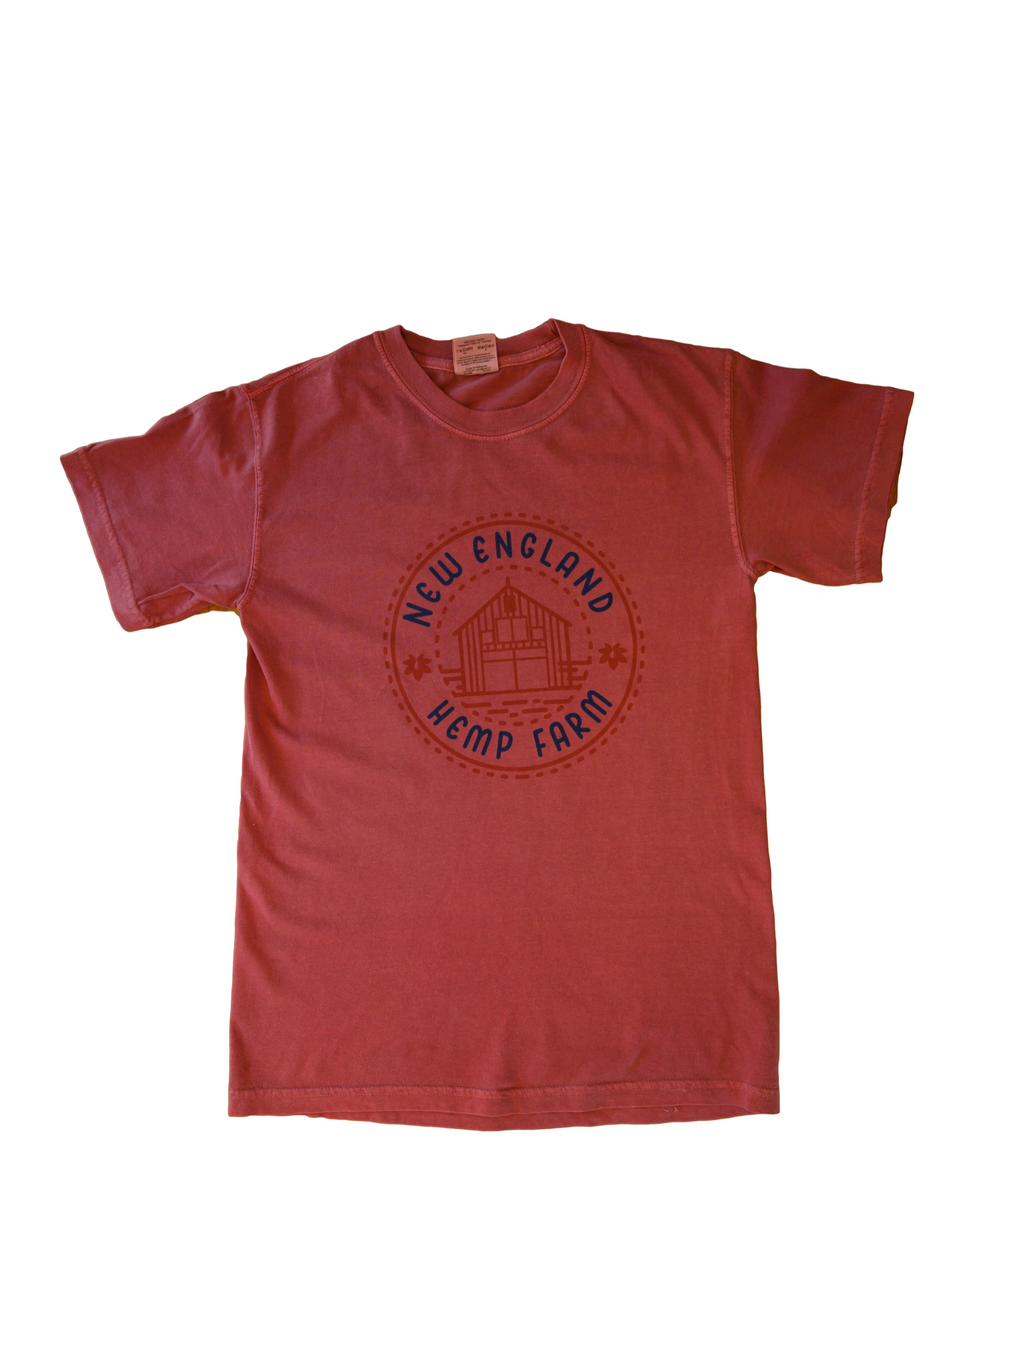 New England Hemp Farm T-shirt